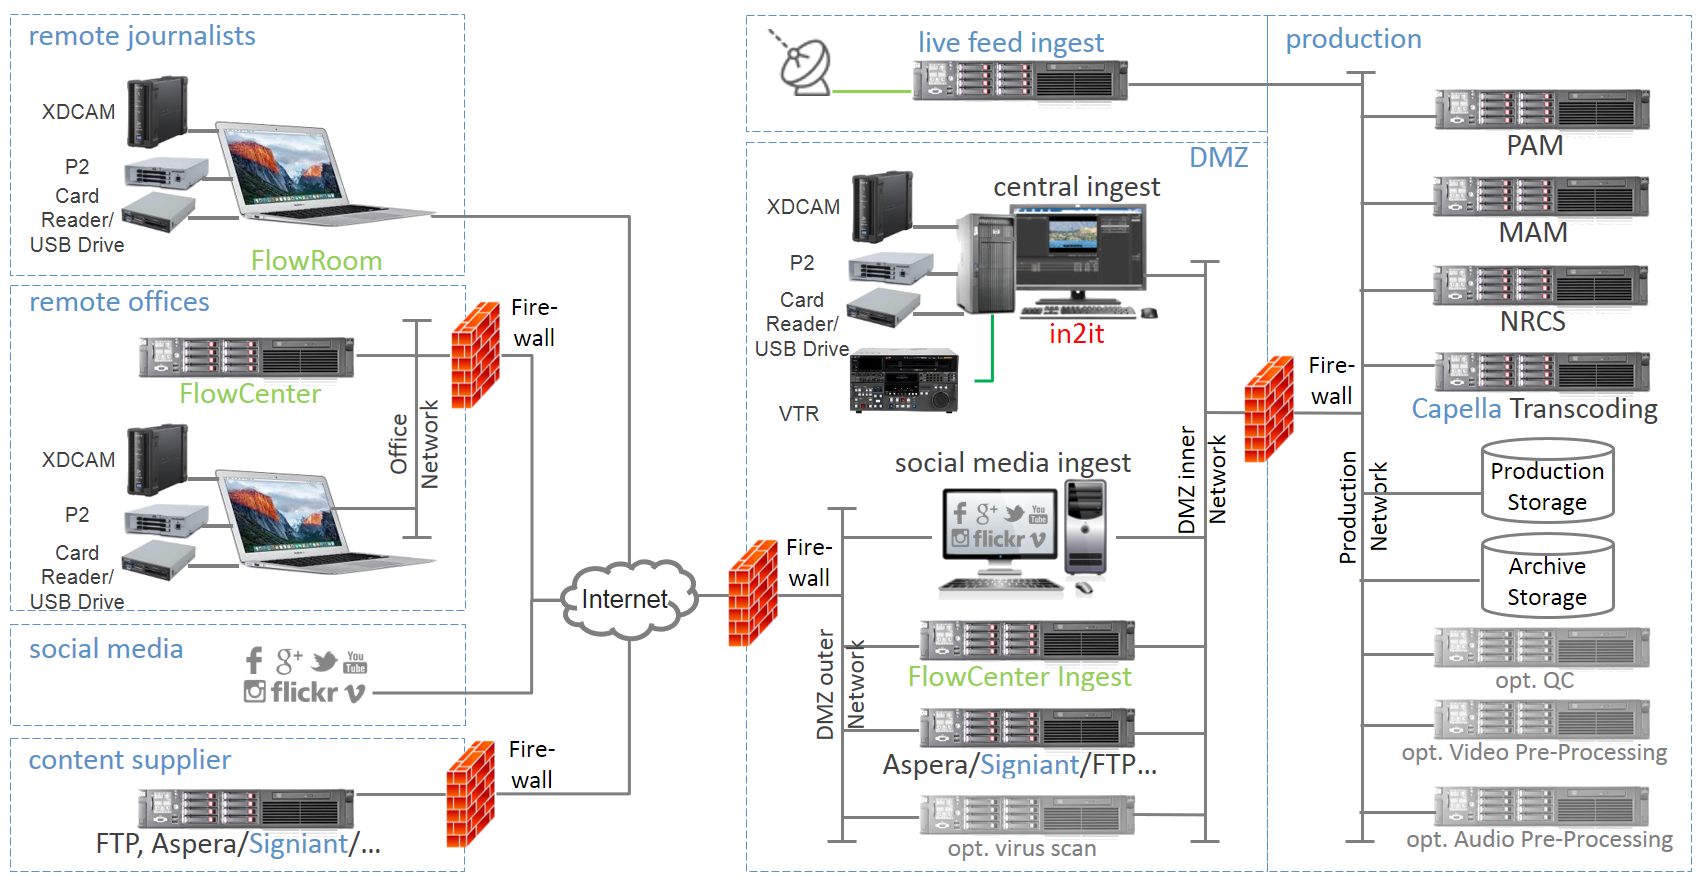 Ingest Solution Network Architecture